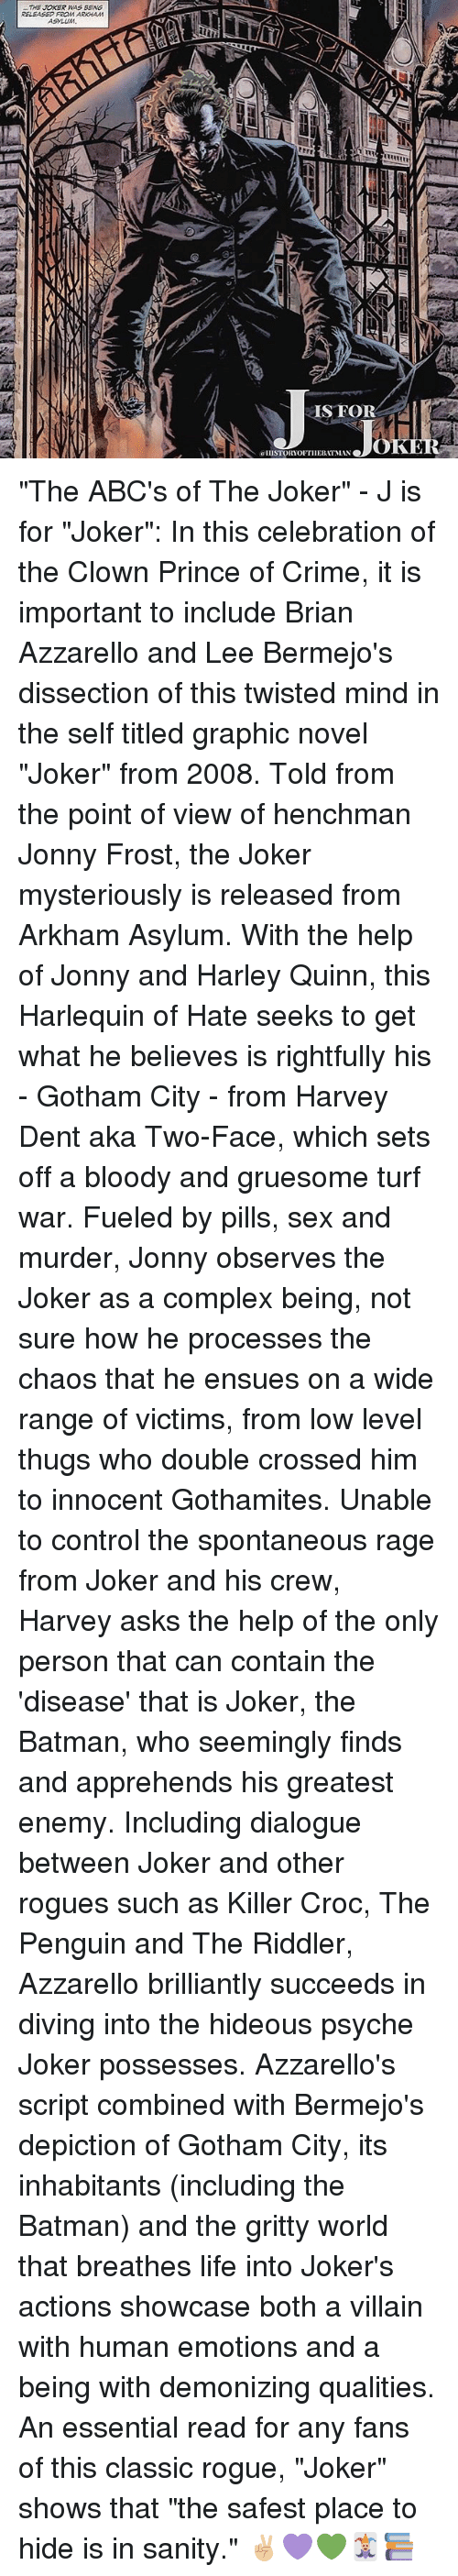 """two faces: THE JOKER WAS BENG  RELEASED FROM ARKAHAM  SFOR  OK  ISTORTOFTIIEBIT MAN """"The ABC's of The Joker"""" - J is for """"Joker"""": In this celebration of the Clown Prince of Crime, it is important to include Brian Azzarello and Lee Bermejo's dissection of this twisted mind in the self titled graphic novel """"Joker"""" from 2008. Told from the point of view of henchman Jonny Frost, the Joker mysteriously is released from Arkham Asylum. With the help of Jonny and Harley Quinn, this Harlequin of Hate seeks to get what he believes is rightfully his - Gotham City - from Harvey Dent aka Two-Face, which sets off a bloody and gruesome turf war. Fueled by pills, sex and murder, Jonny observes the Joker as a complex being, not sure how he processes the chaos that he ensues on a wide range of victims, from low level thugs who double crossed him to innocent Gothamites. Unable to control the spontaneous rage from Joker and his crew, Harvey asks the help of the only person that can contain the 'disease' that is Joker, the Batman, who seemingly finds and apprehends his greatest enemy. Including dialogue between Joker and other rogues such as Killer Croc, The Penguin and The Riddler, Azzarello brilliantly succeeds in diving into the hideous psyche Joker possesses. Azzarello's script combined with Bermejo's depiction of Gotham City, its inhabitants (including the Batman) and the gritty world that breathes life into Joker's actions showcase both a villain with human emotions and a being with demonizing qualities. An essential read for any fans of this classic rogue, """"Joker"""" shows that """"the safest place to hide is in sanity."""" ✌🏼💜💚🃏📚"""